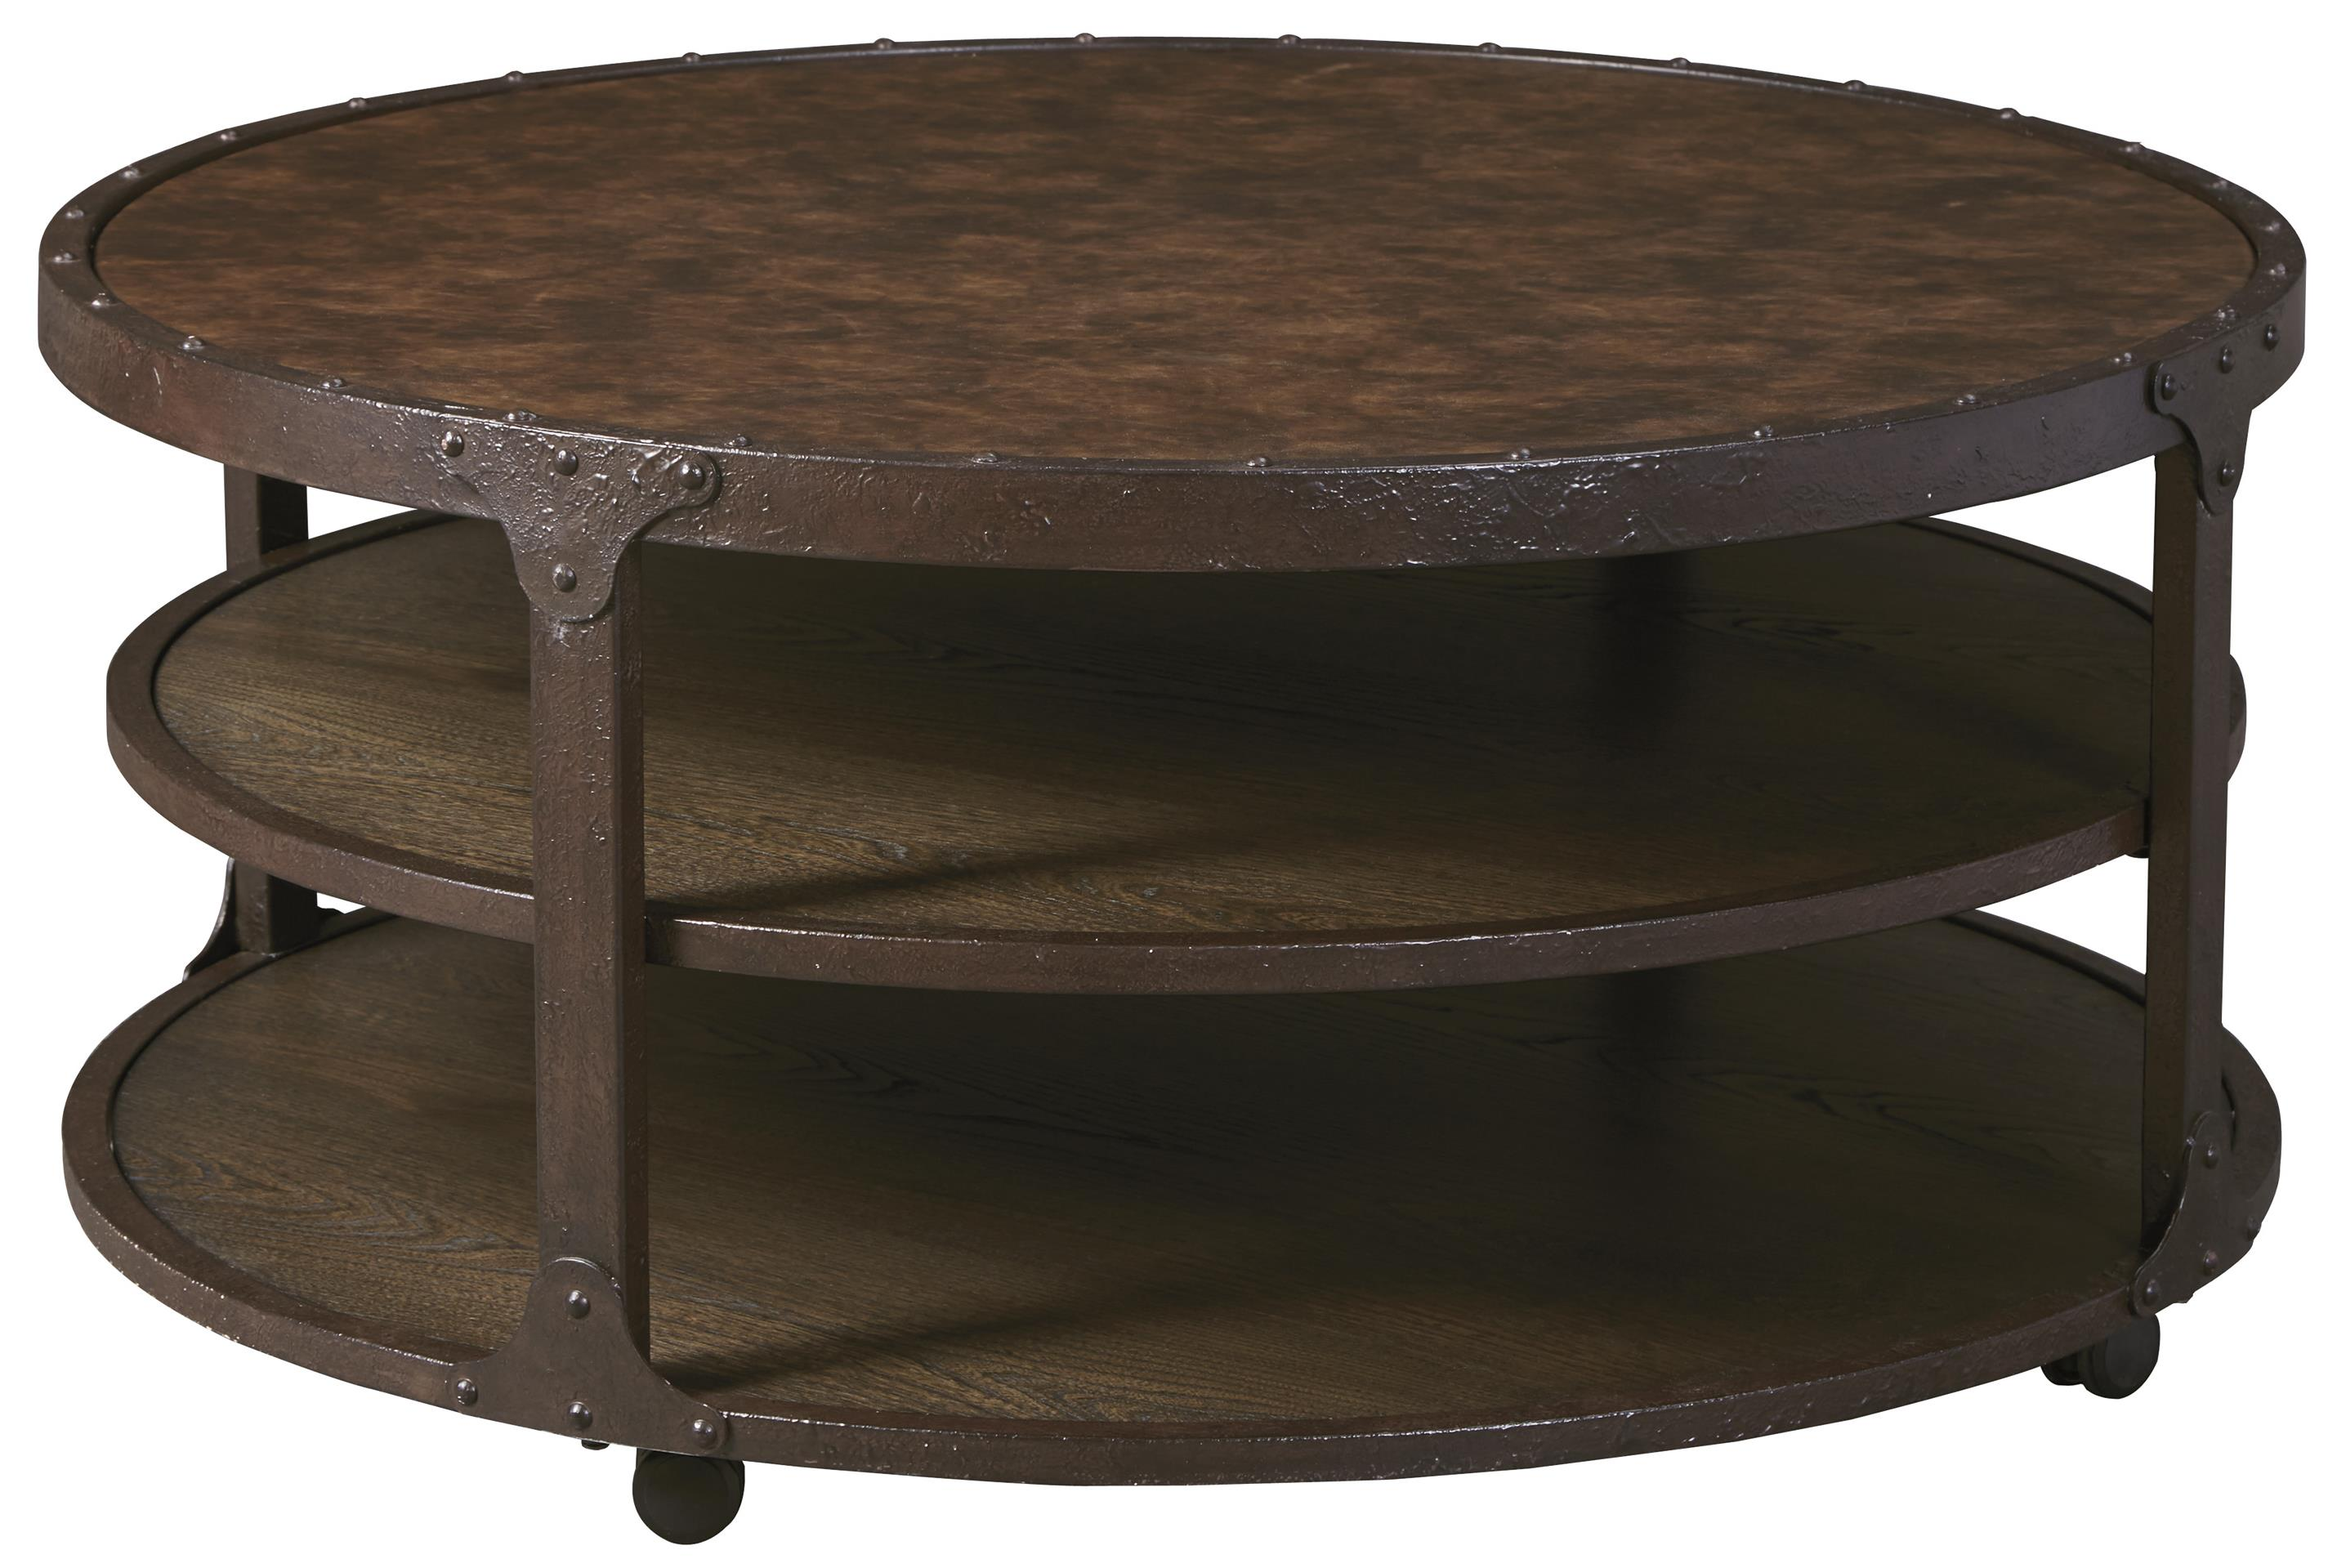 Signature Design by Ashley Shofern Round Cocktail Table - Item Number: T702-8